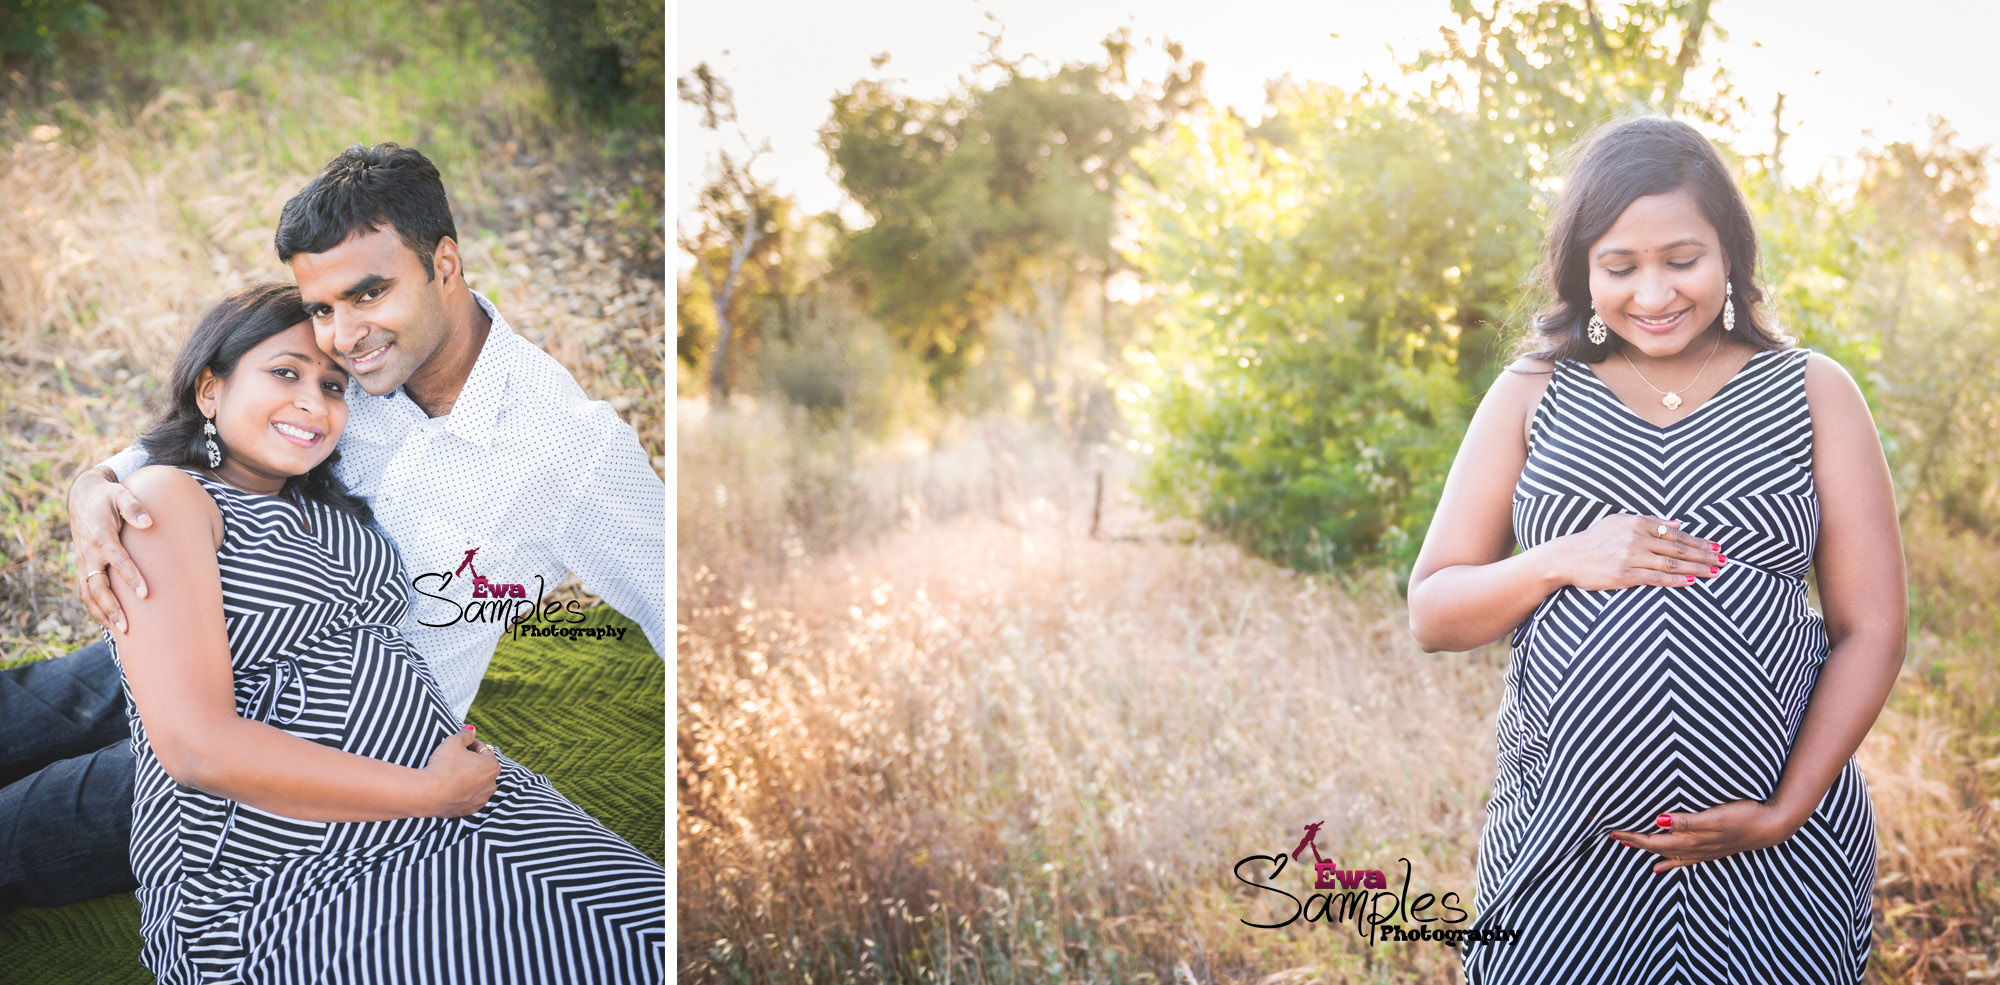 maternity_peach_dress_maternity_photography_san_jose_cupertino_silicon_valley_ewa_samples